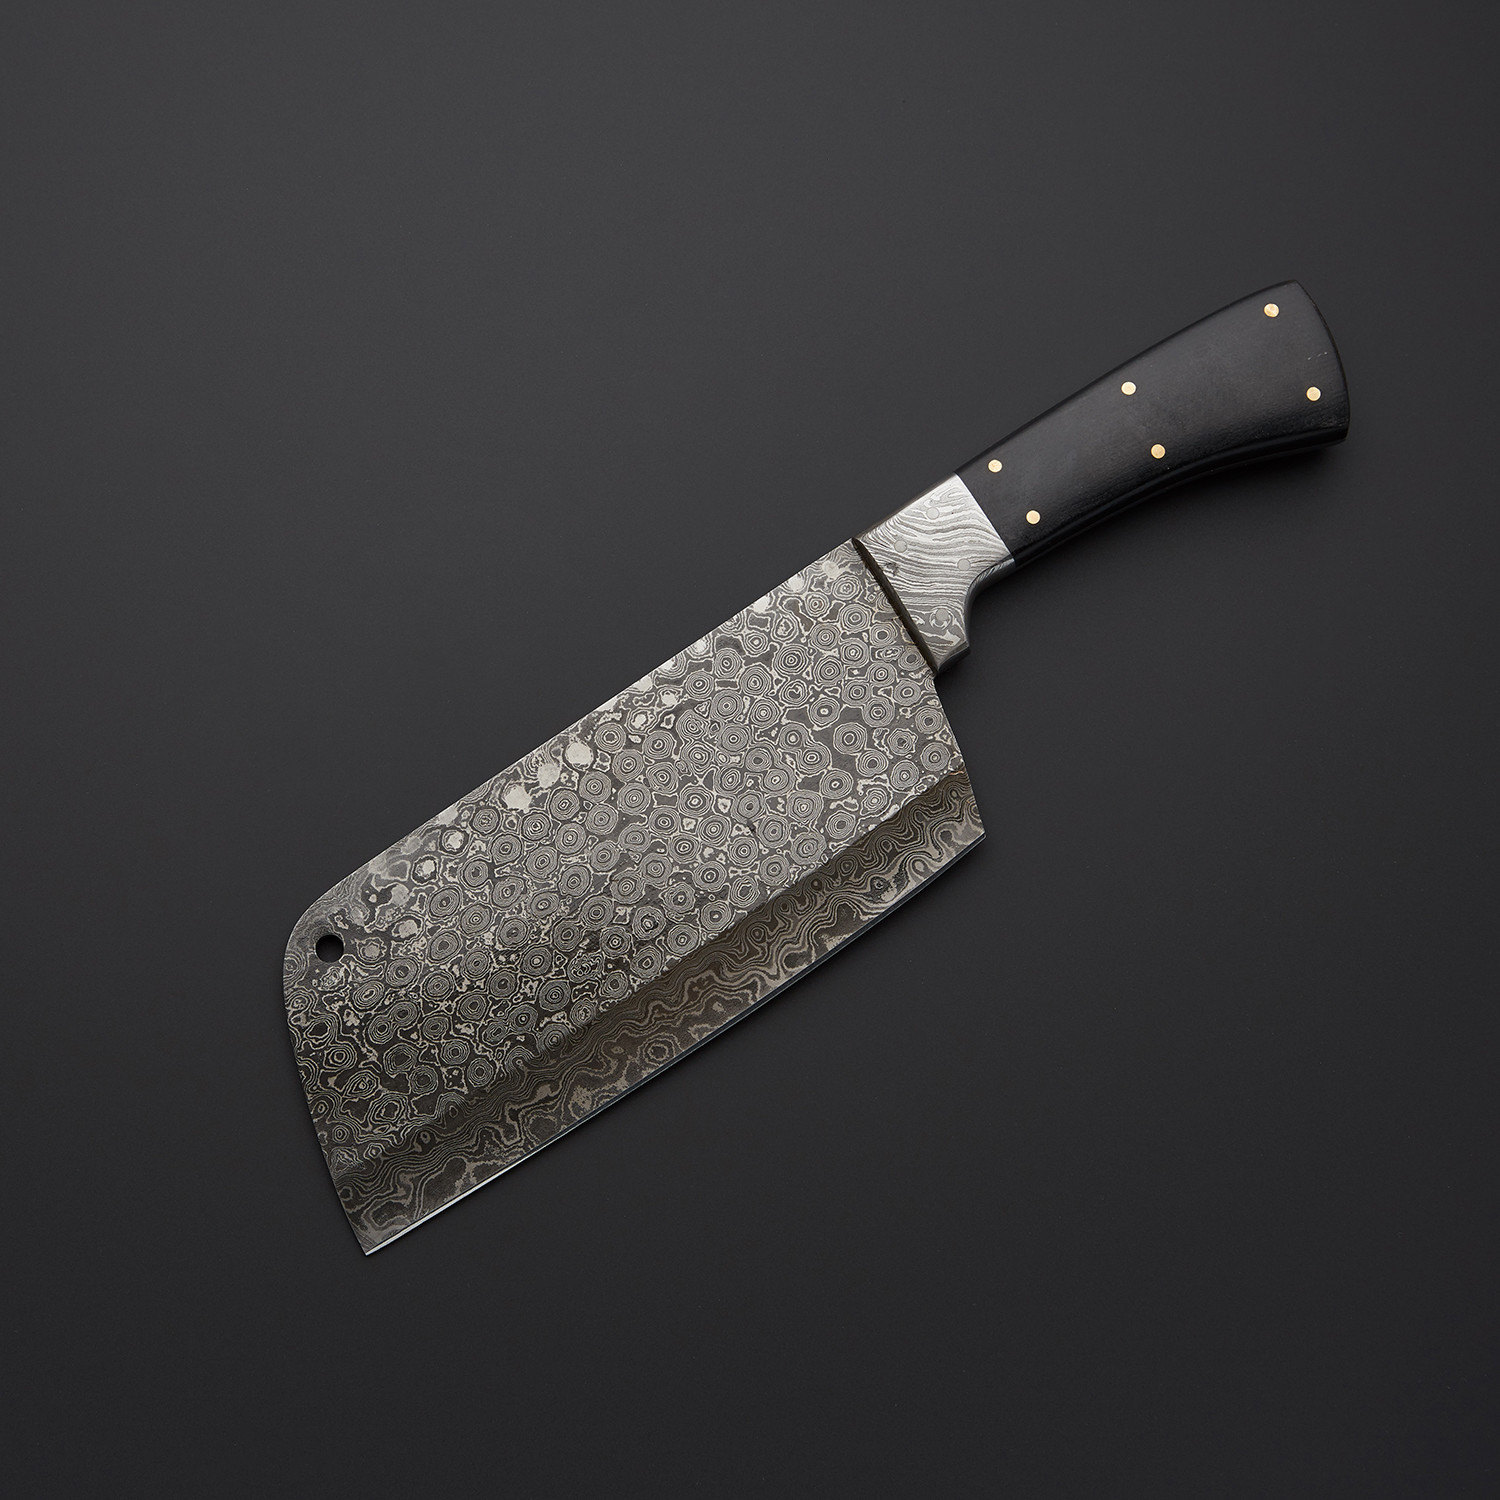 cleaver knife hover to zoom cleaver kitchen knives the knife cleaver zoom chinese. Black Bedroom Furniture Sets. Home Design Ideas